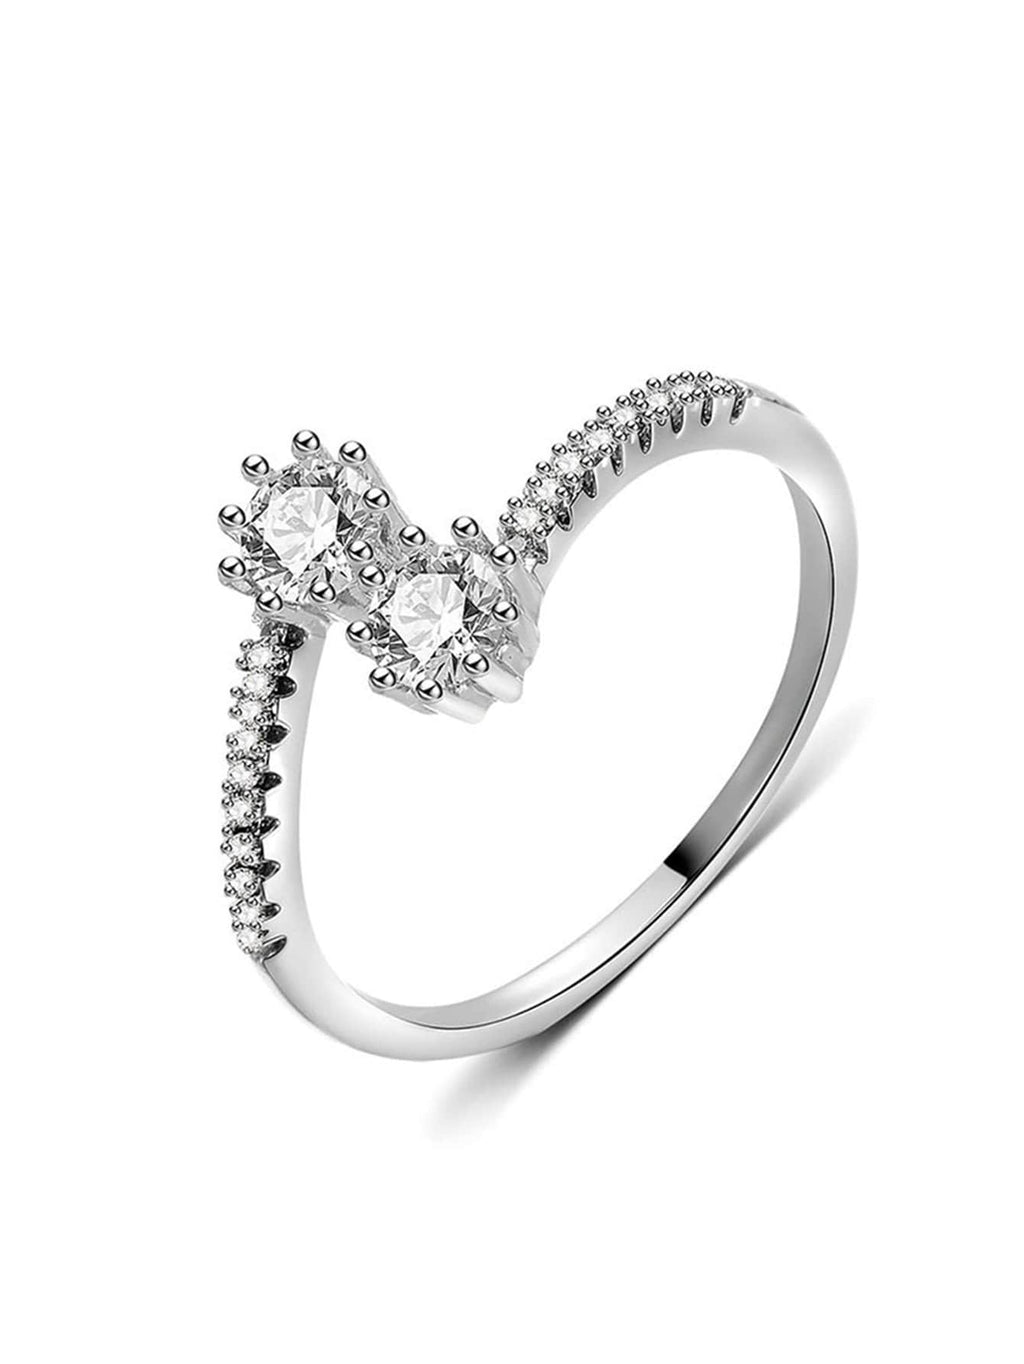 Casual Rings - Rhinestone Engraved Ring